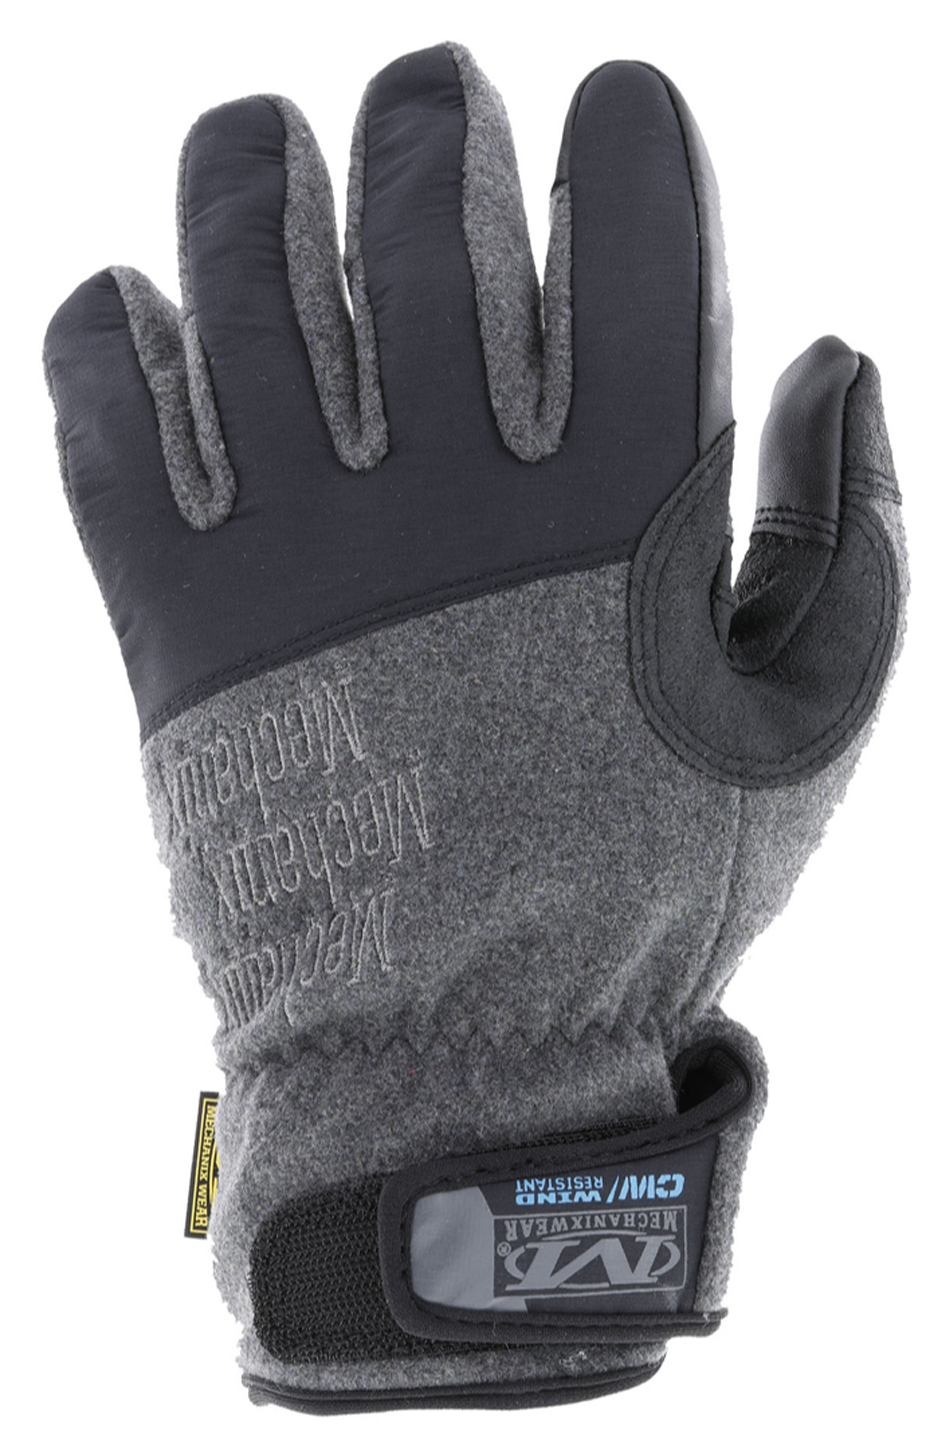 Mechanix Wear MCW-WR-008 Gloves, Shop, Wind Resistant, Reinforced Palm, Hook and Loop Closure, Insulated, Touch Screen Compatible, Black / Gray, Small, Pair